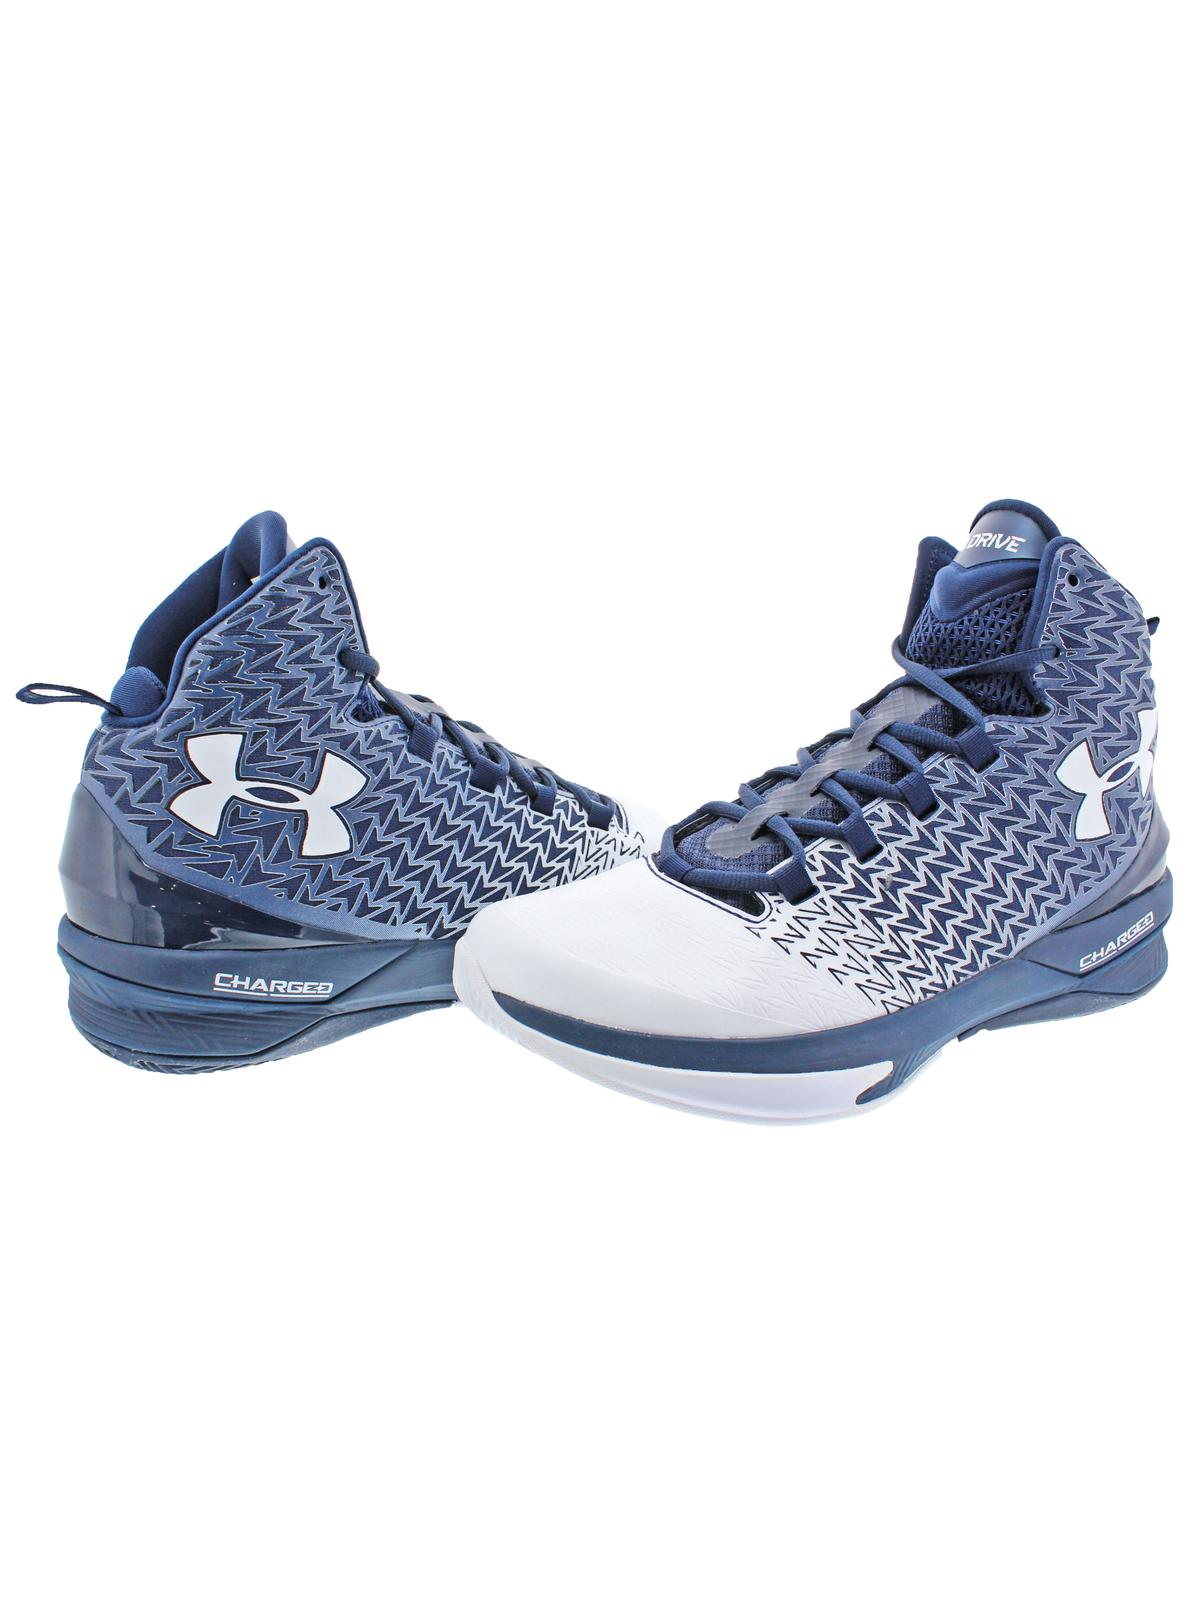 7207f1e10800 Under Armour - Under Armour Mens Clutchfit Drive 3 High Top Charged Basketball  Shoes - Walmart.com